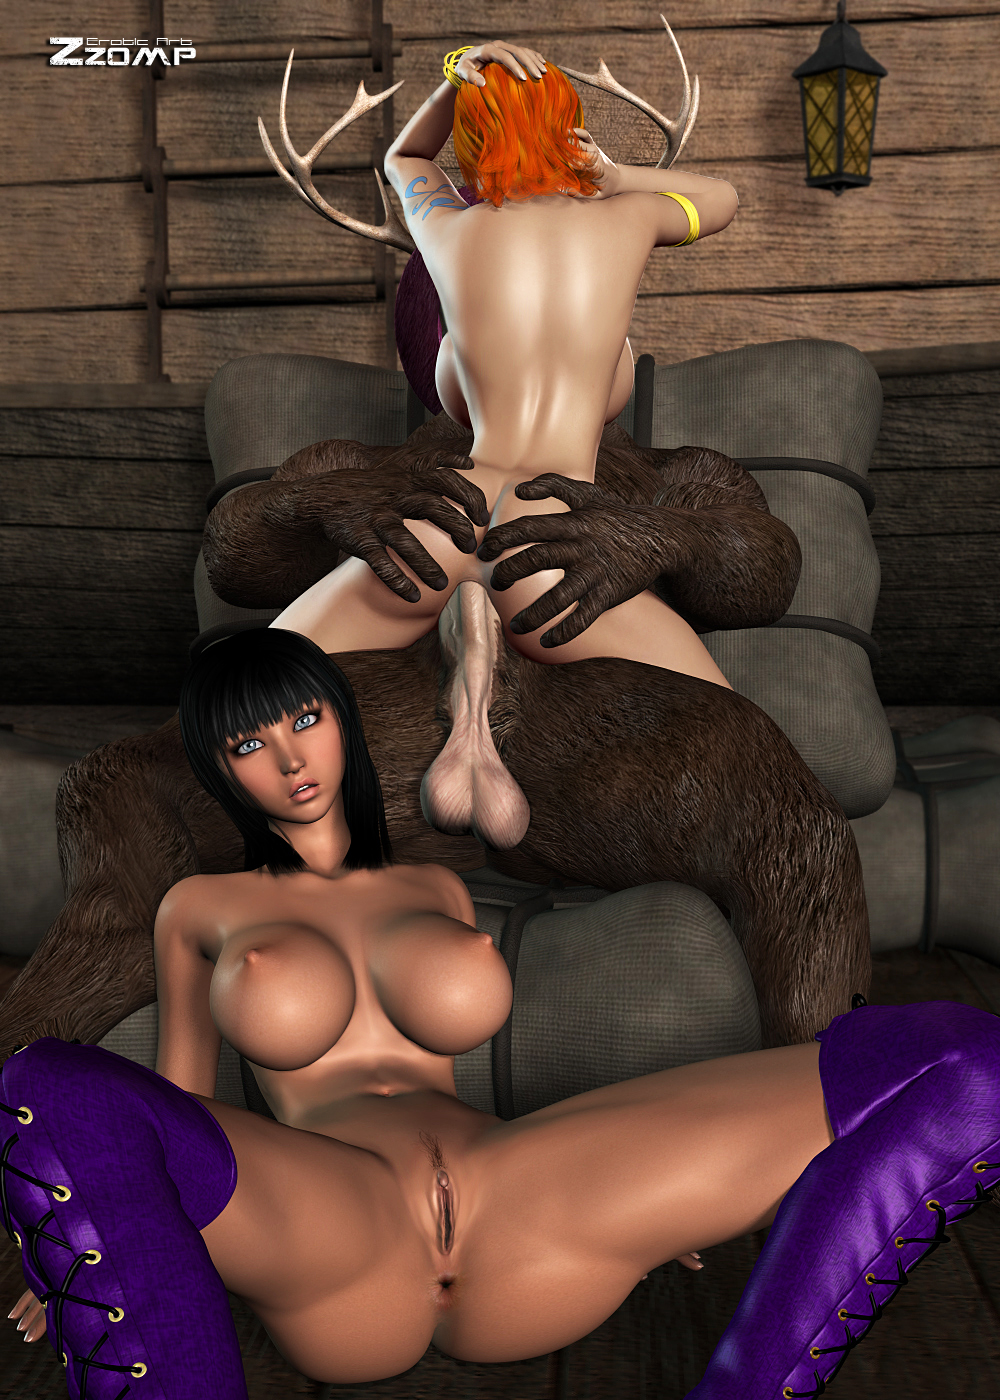 World of porncraft black elf adult movies